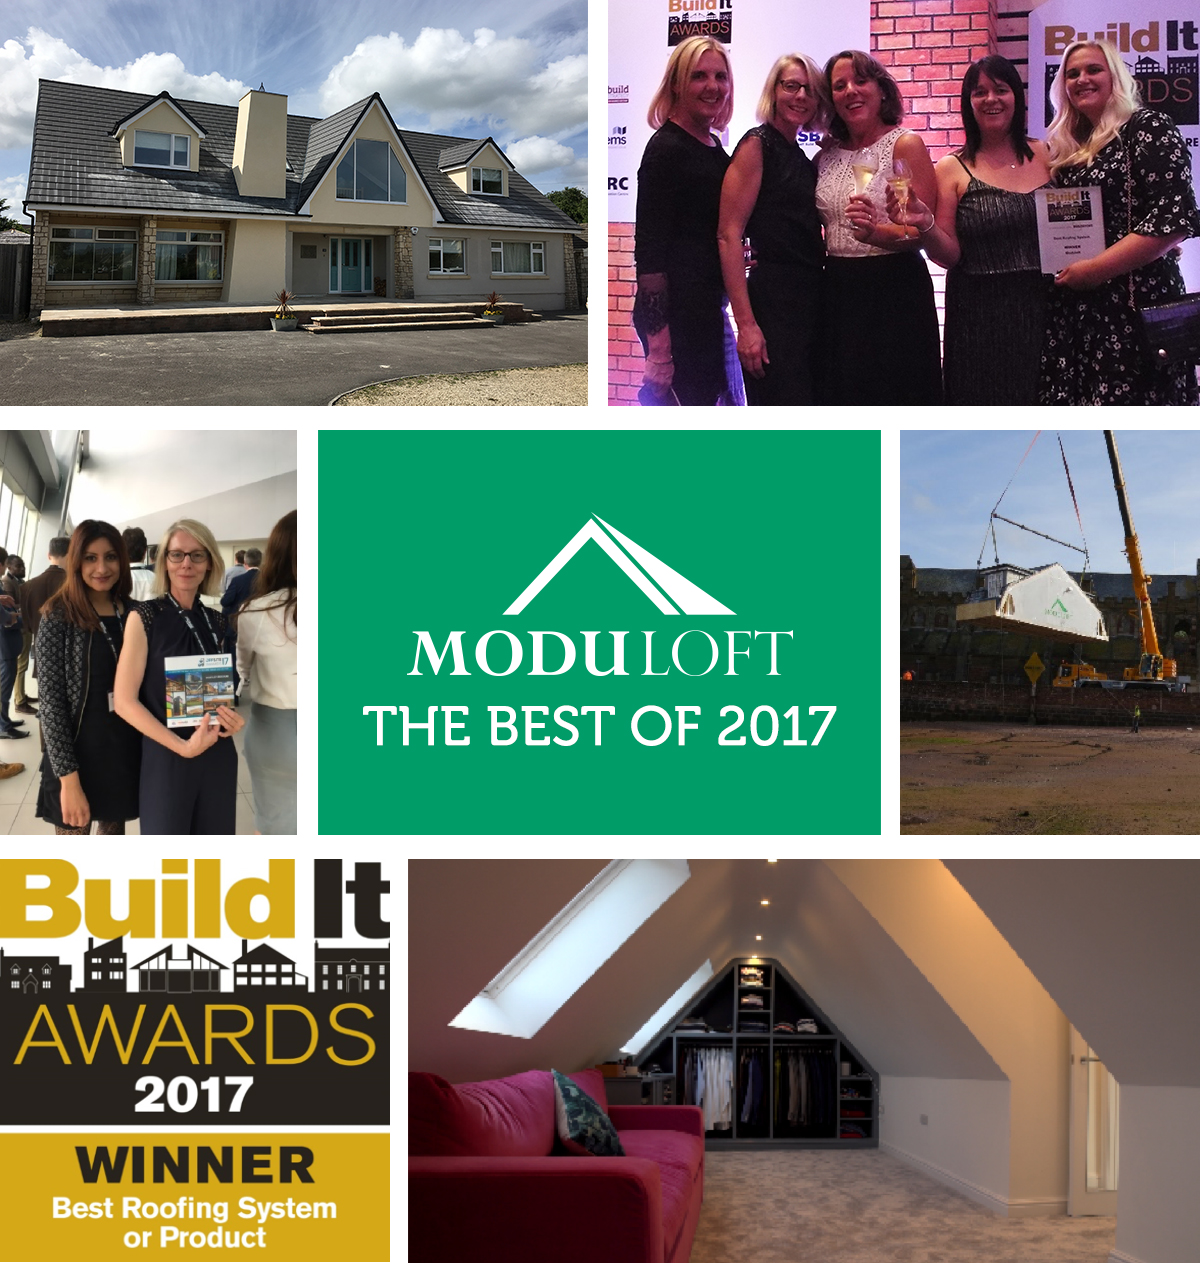 C13997-Moduloft-Roundup-2017-Facebook-Graphic